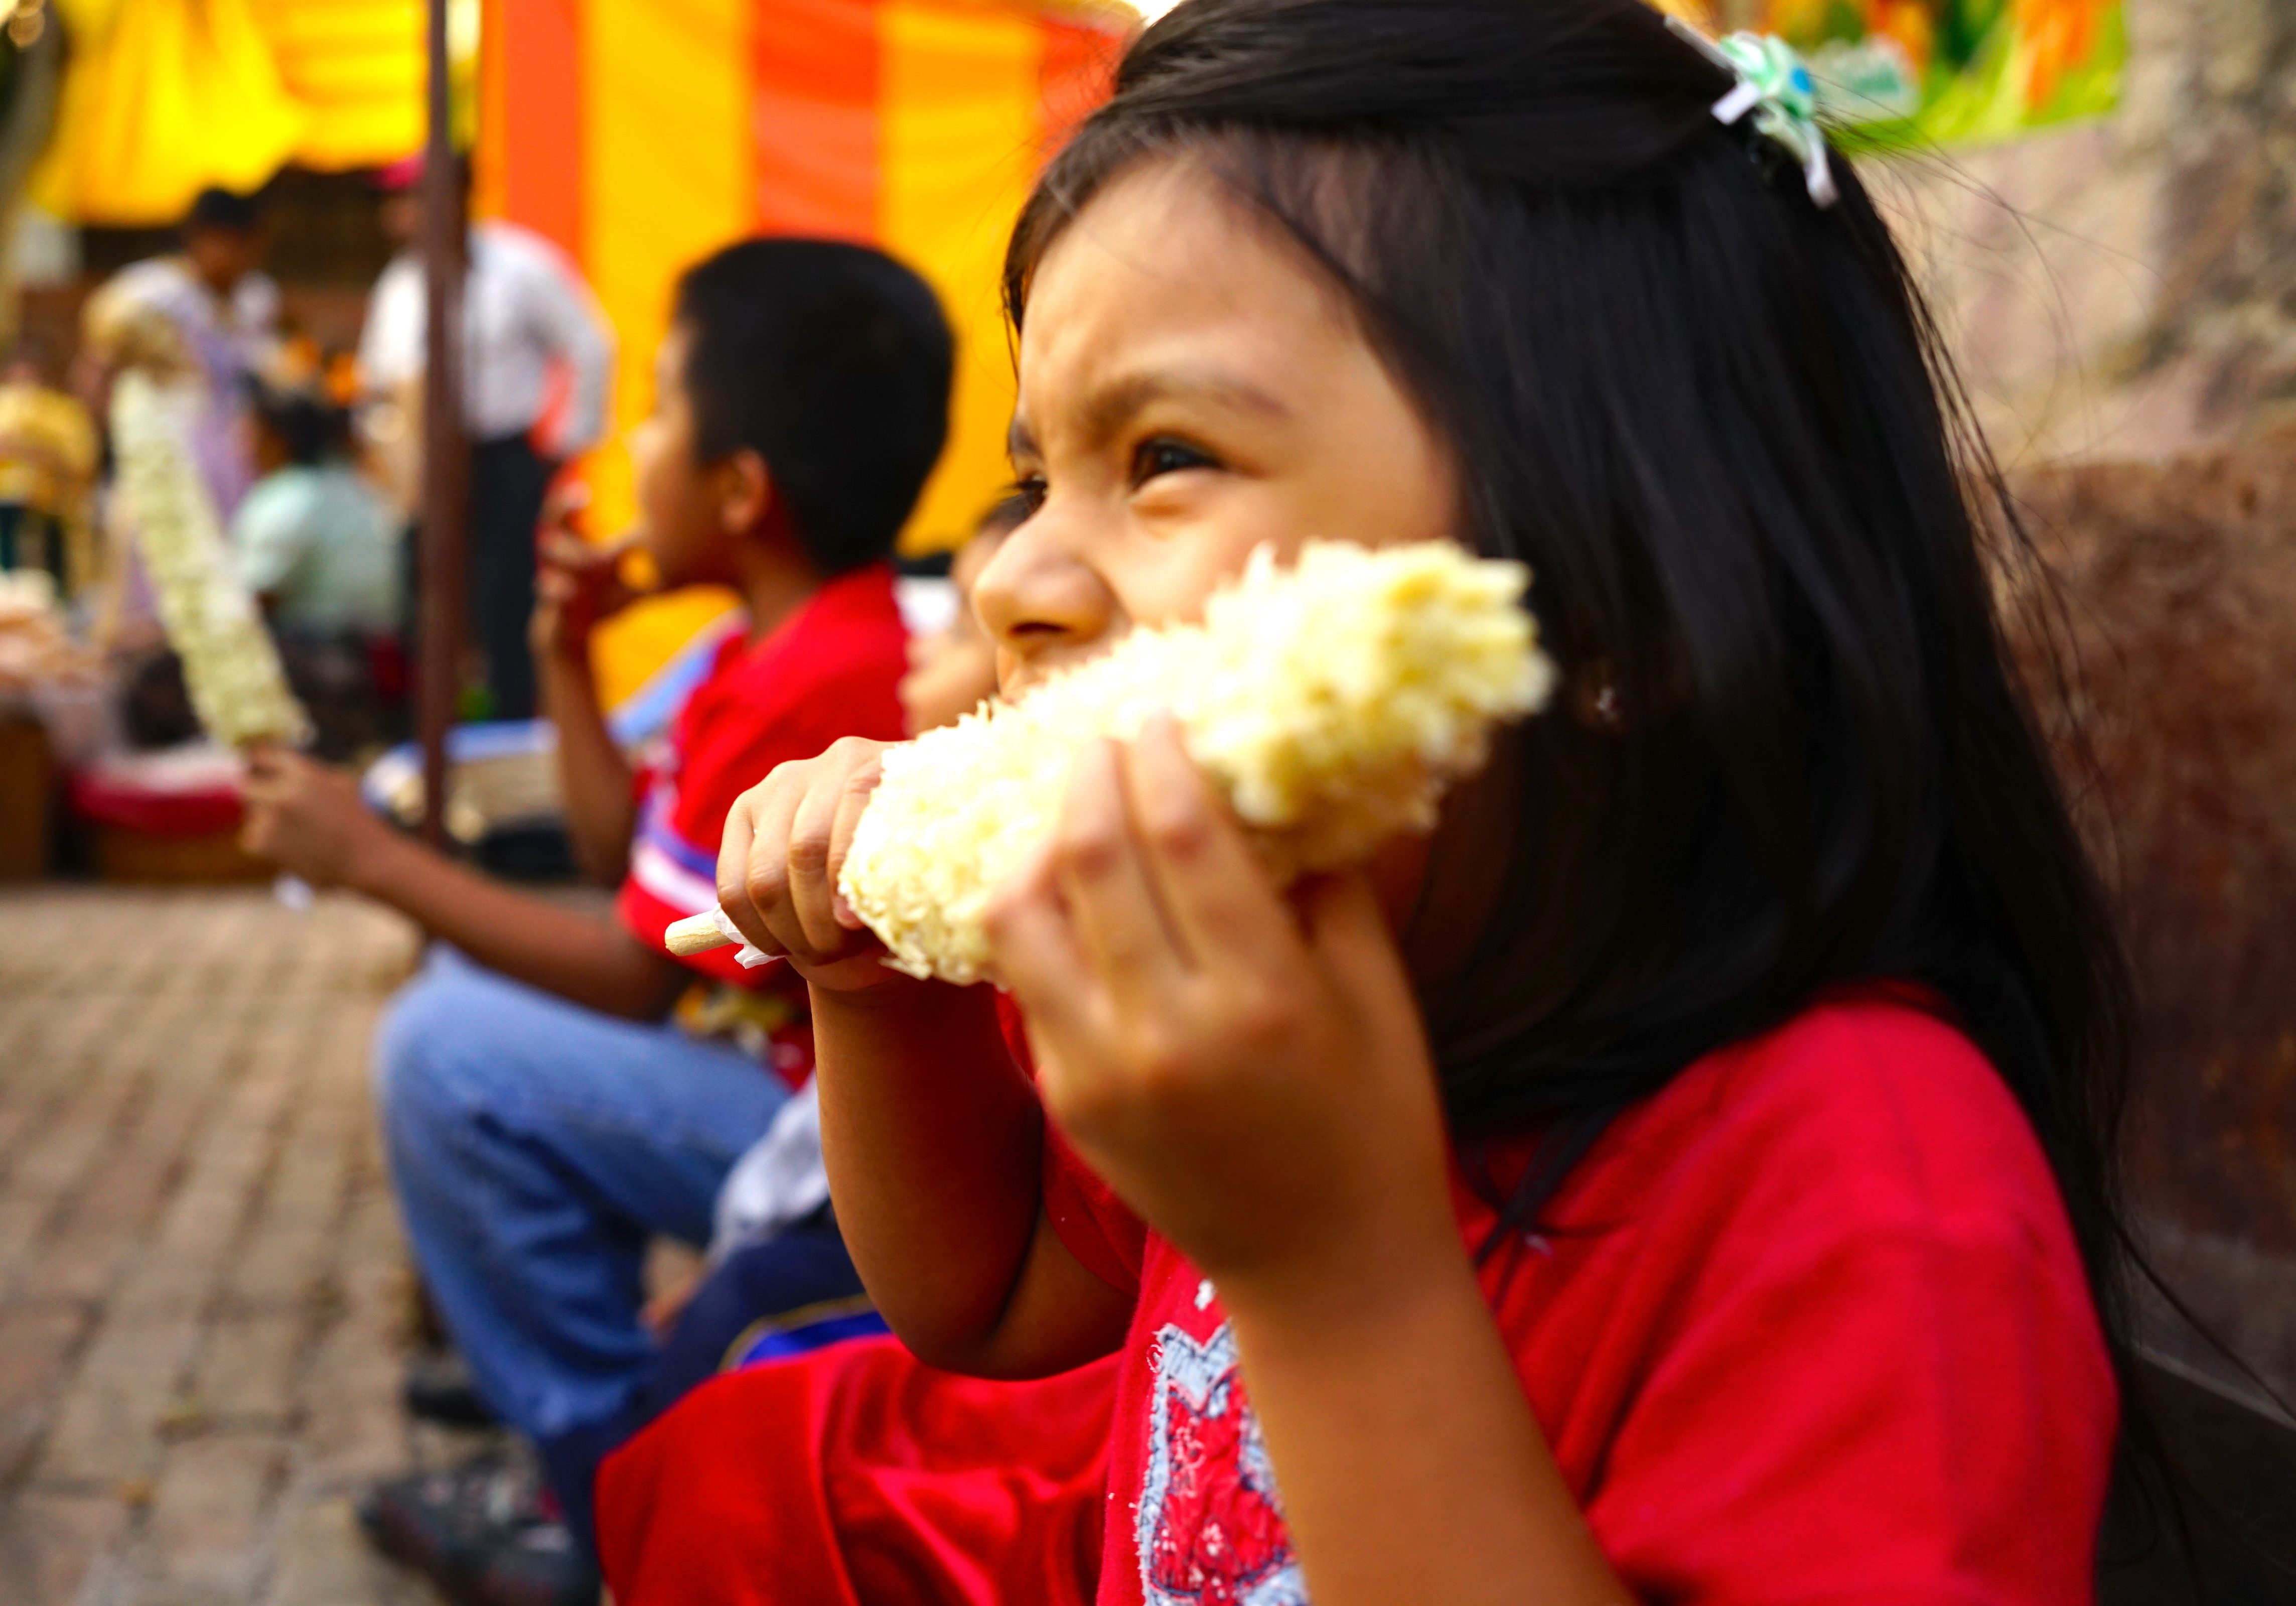 A girl eating elote